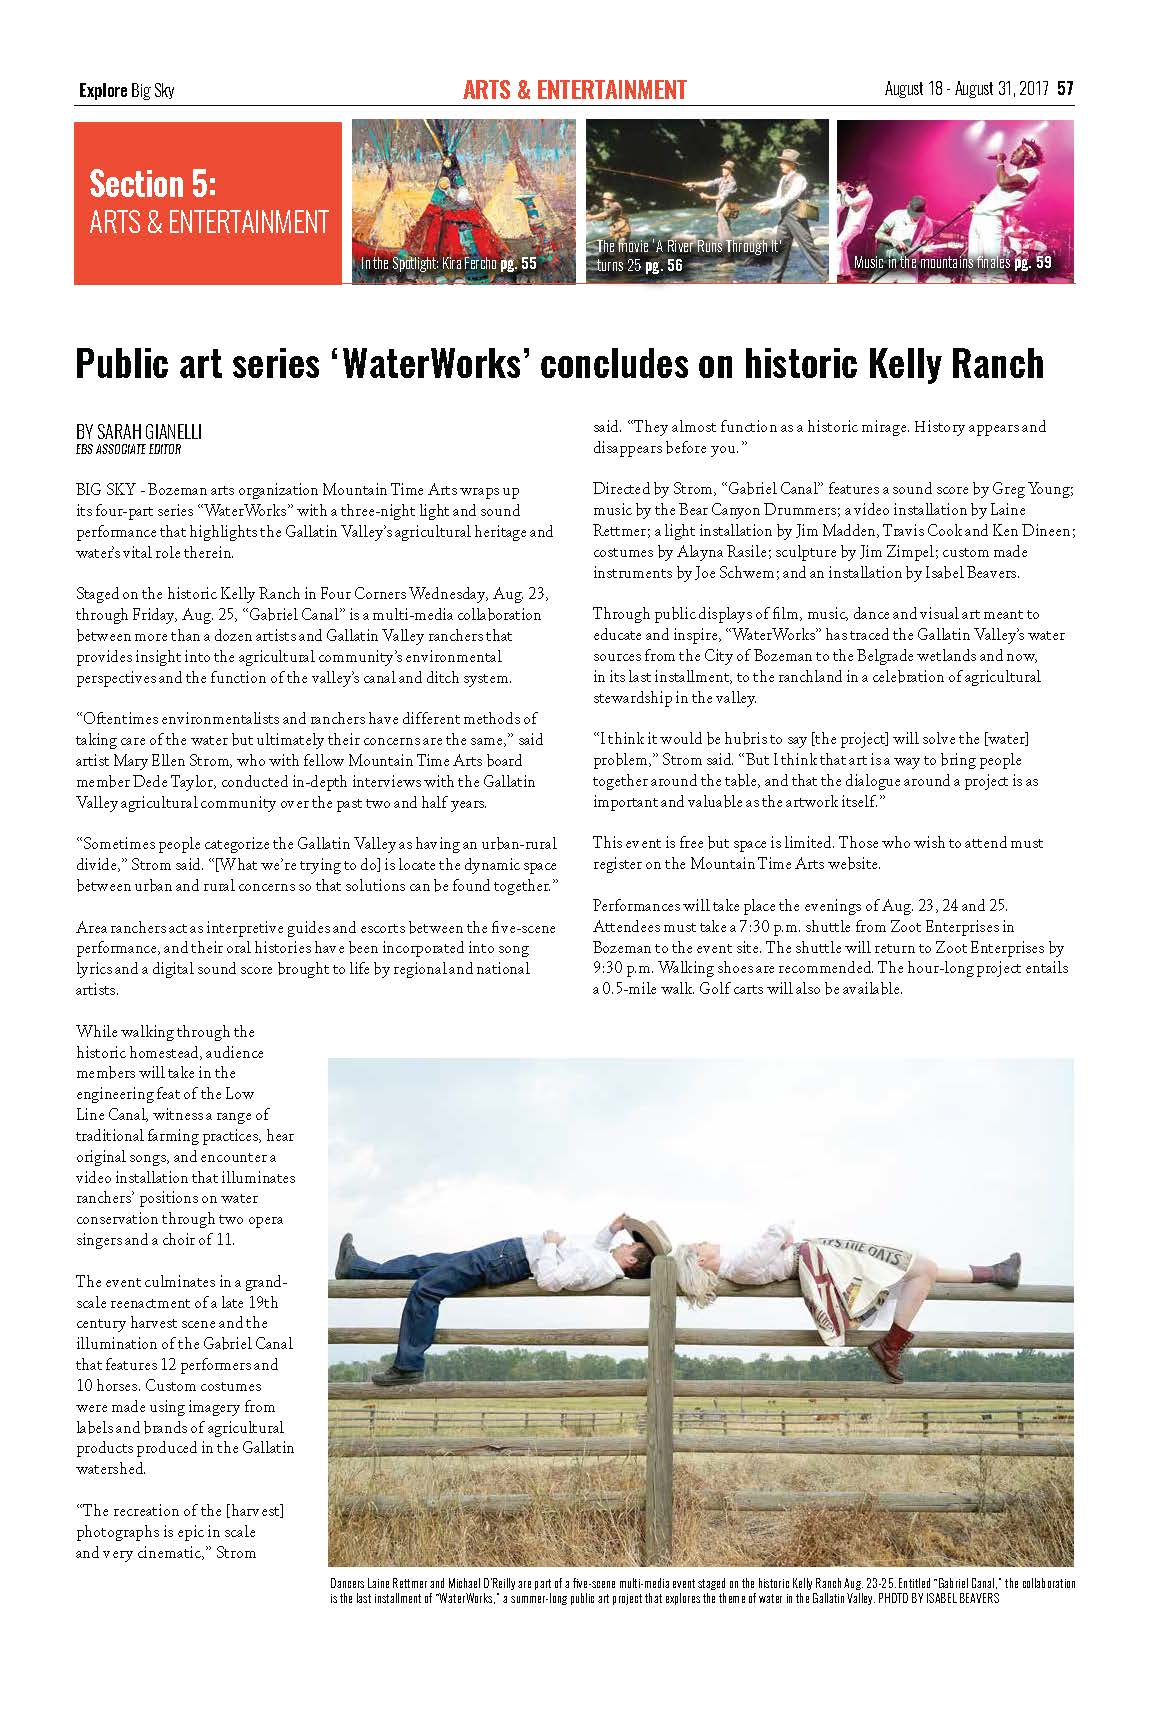 Explore Big Sky, August 2017: Public art series 'WaterWorks' concludes on historic Kelly Ranch